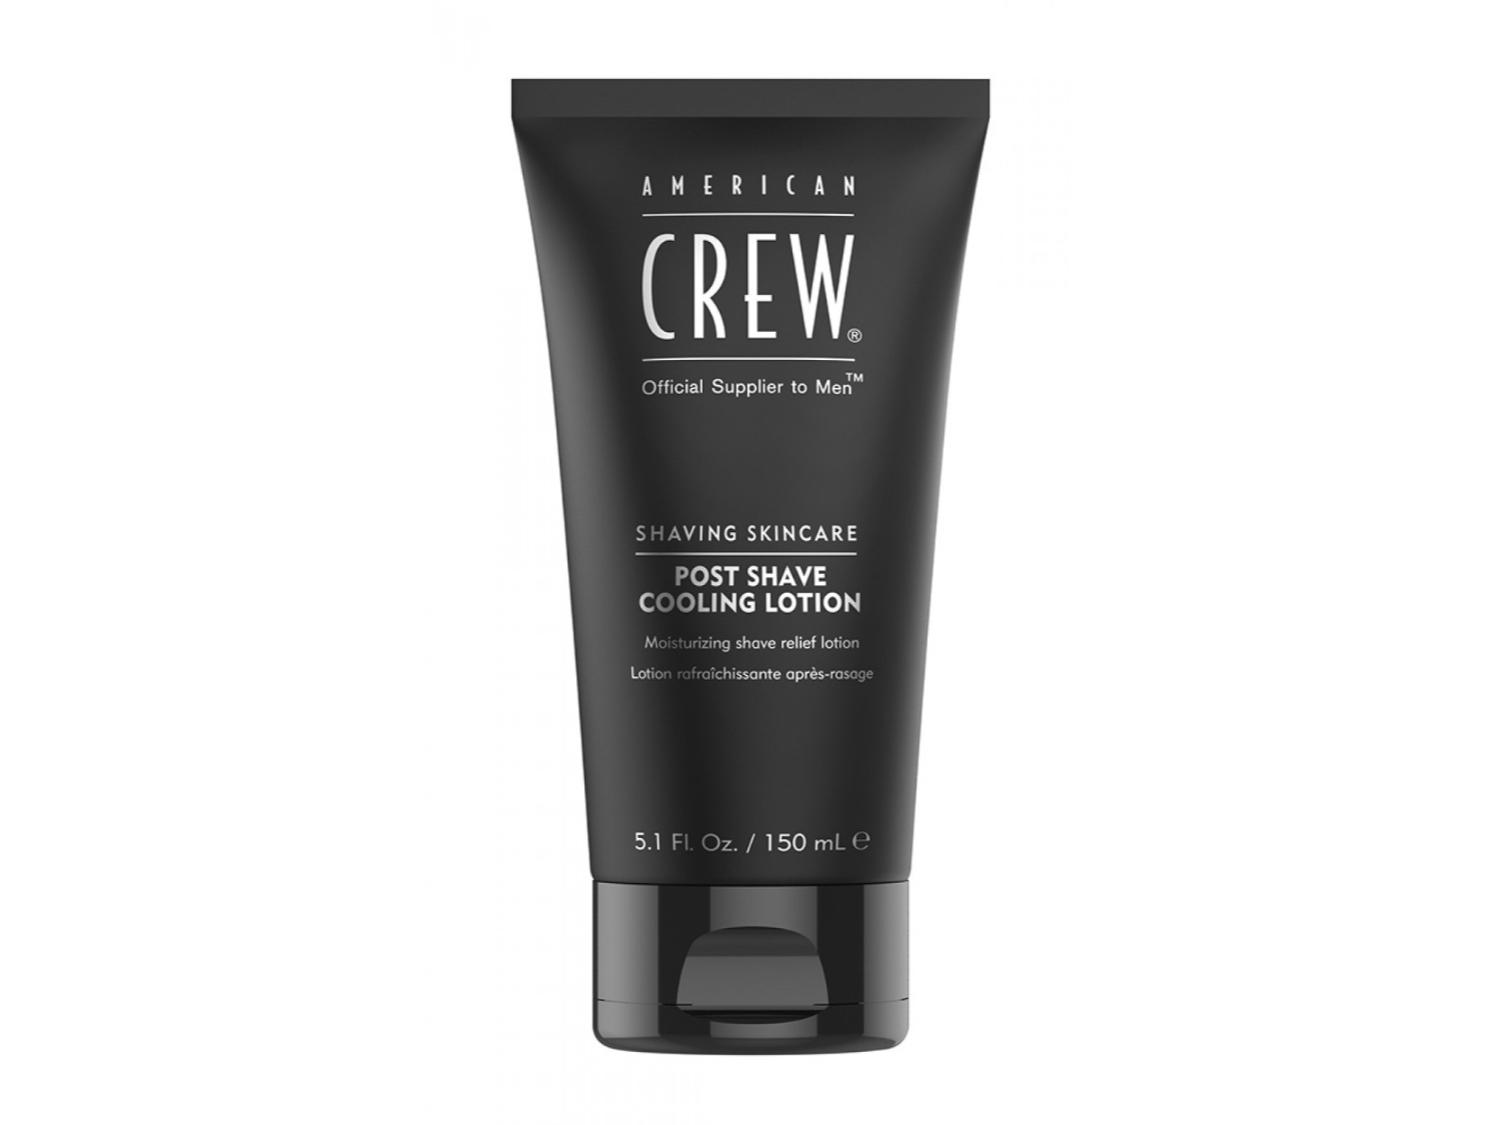 Arma Beauty - American Crew - Post Shave Cooling Lotion